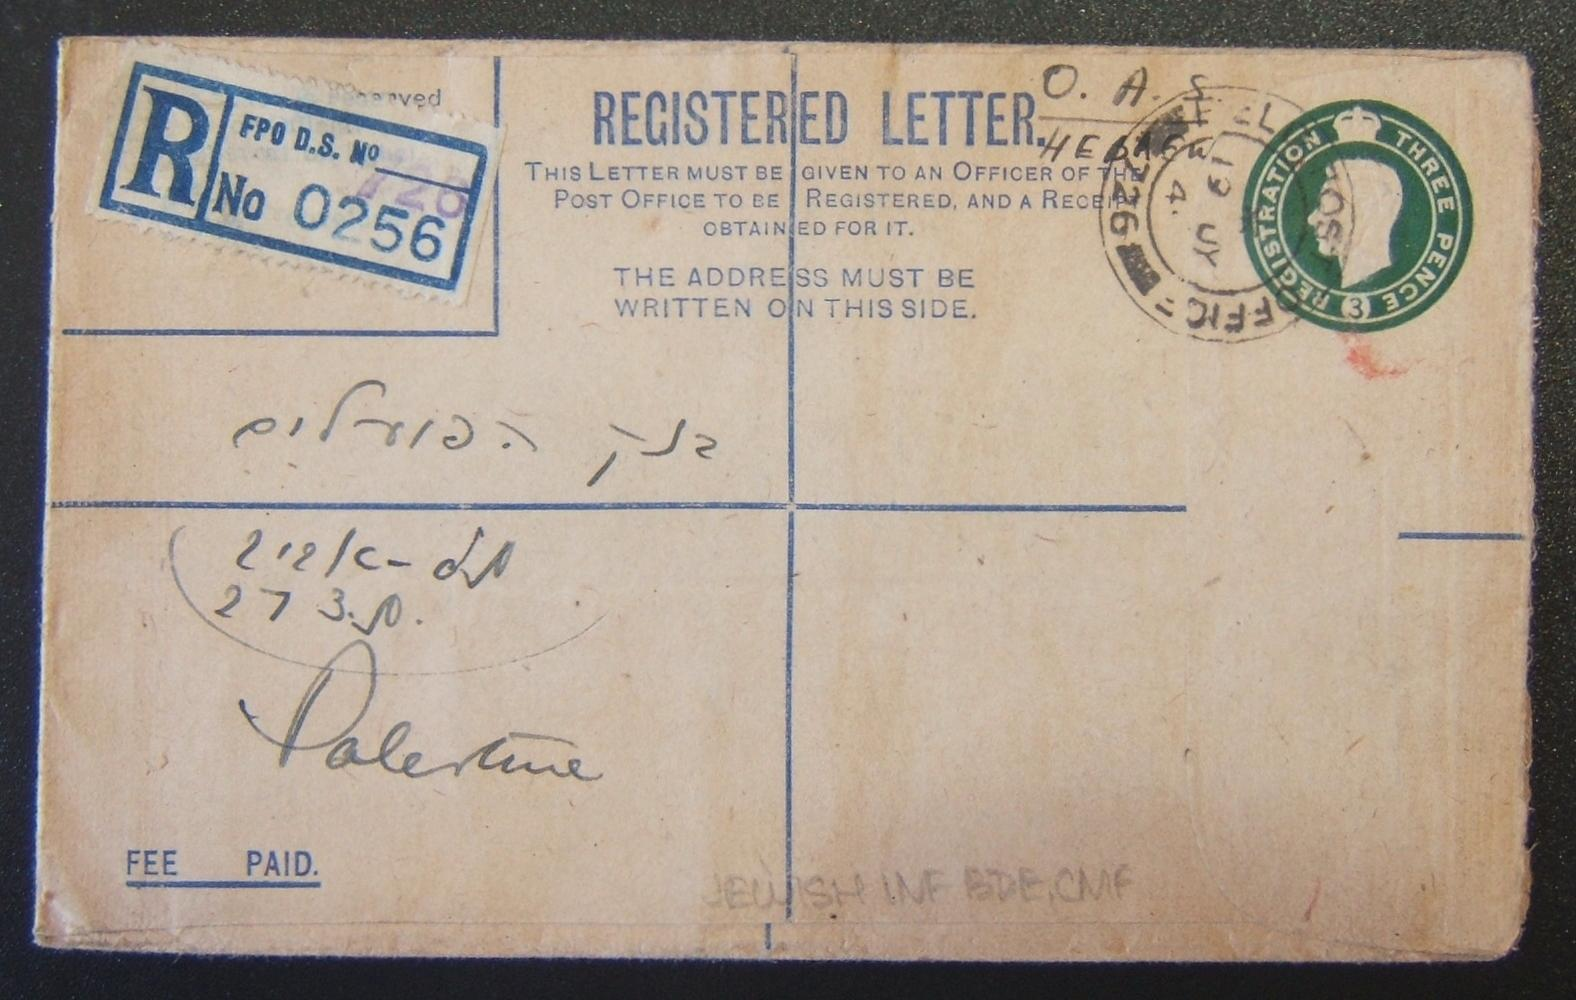 Jewish Brigade mail: 1939/44 British Army 3d KGVI registration envelope (Ba BF.02 B1) ex FPO 726 (Italy) to bank in TEL AVIV, 19 JY 45 and arrived 29 JY 45; handwritten